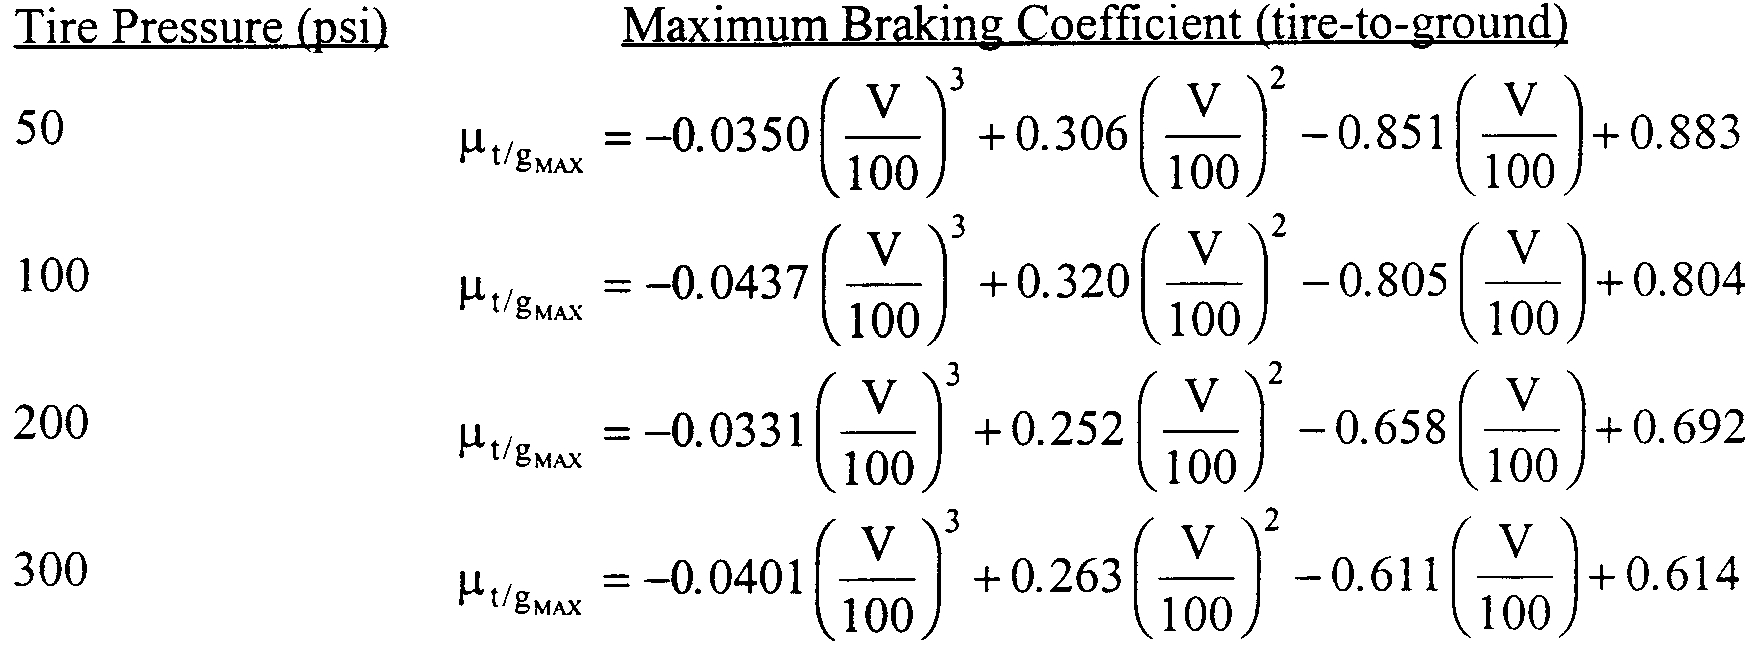 Graphic of (1) The maximum tire-to-ground wet runway braking coefficient of friction is defined as